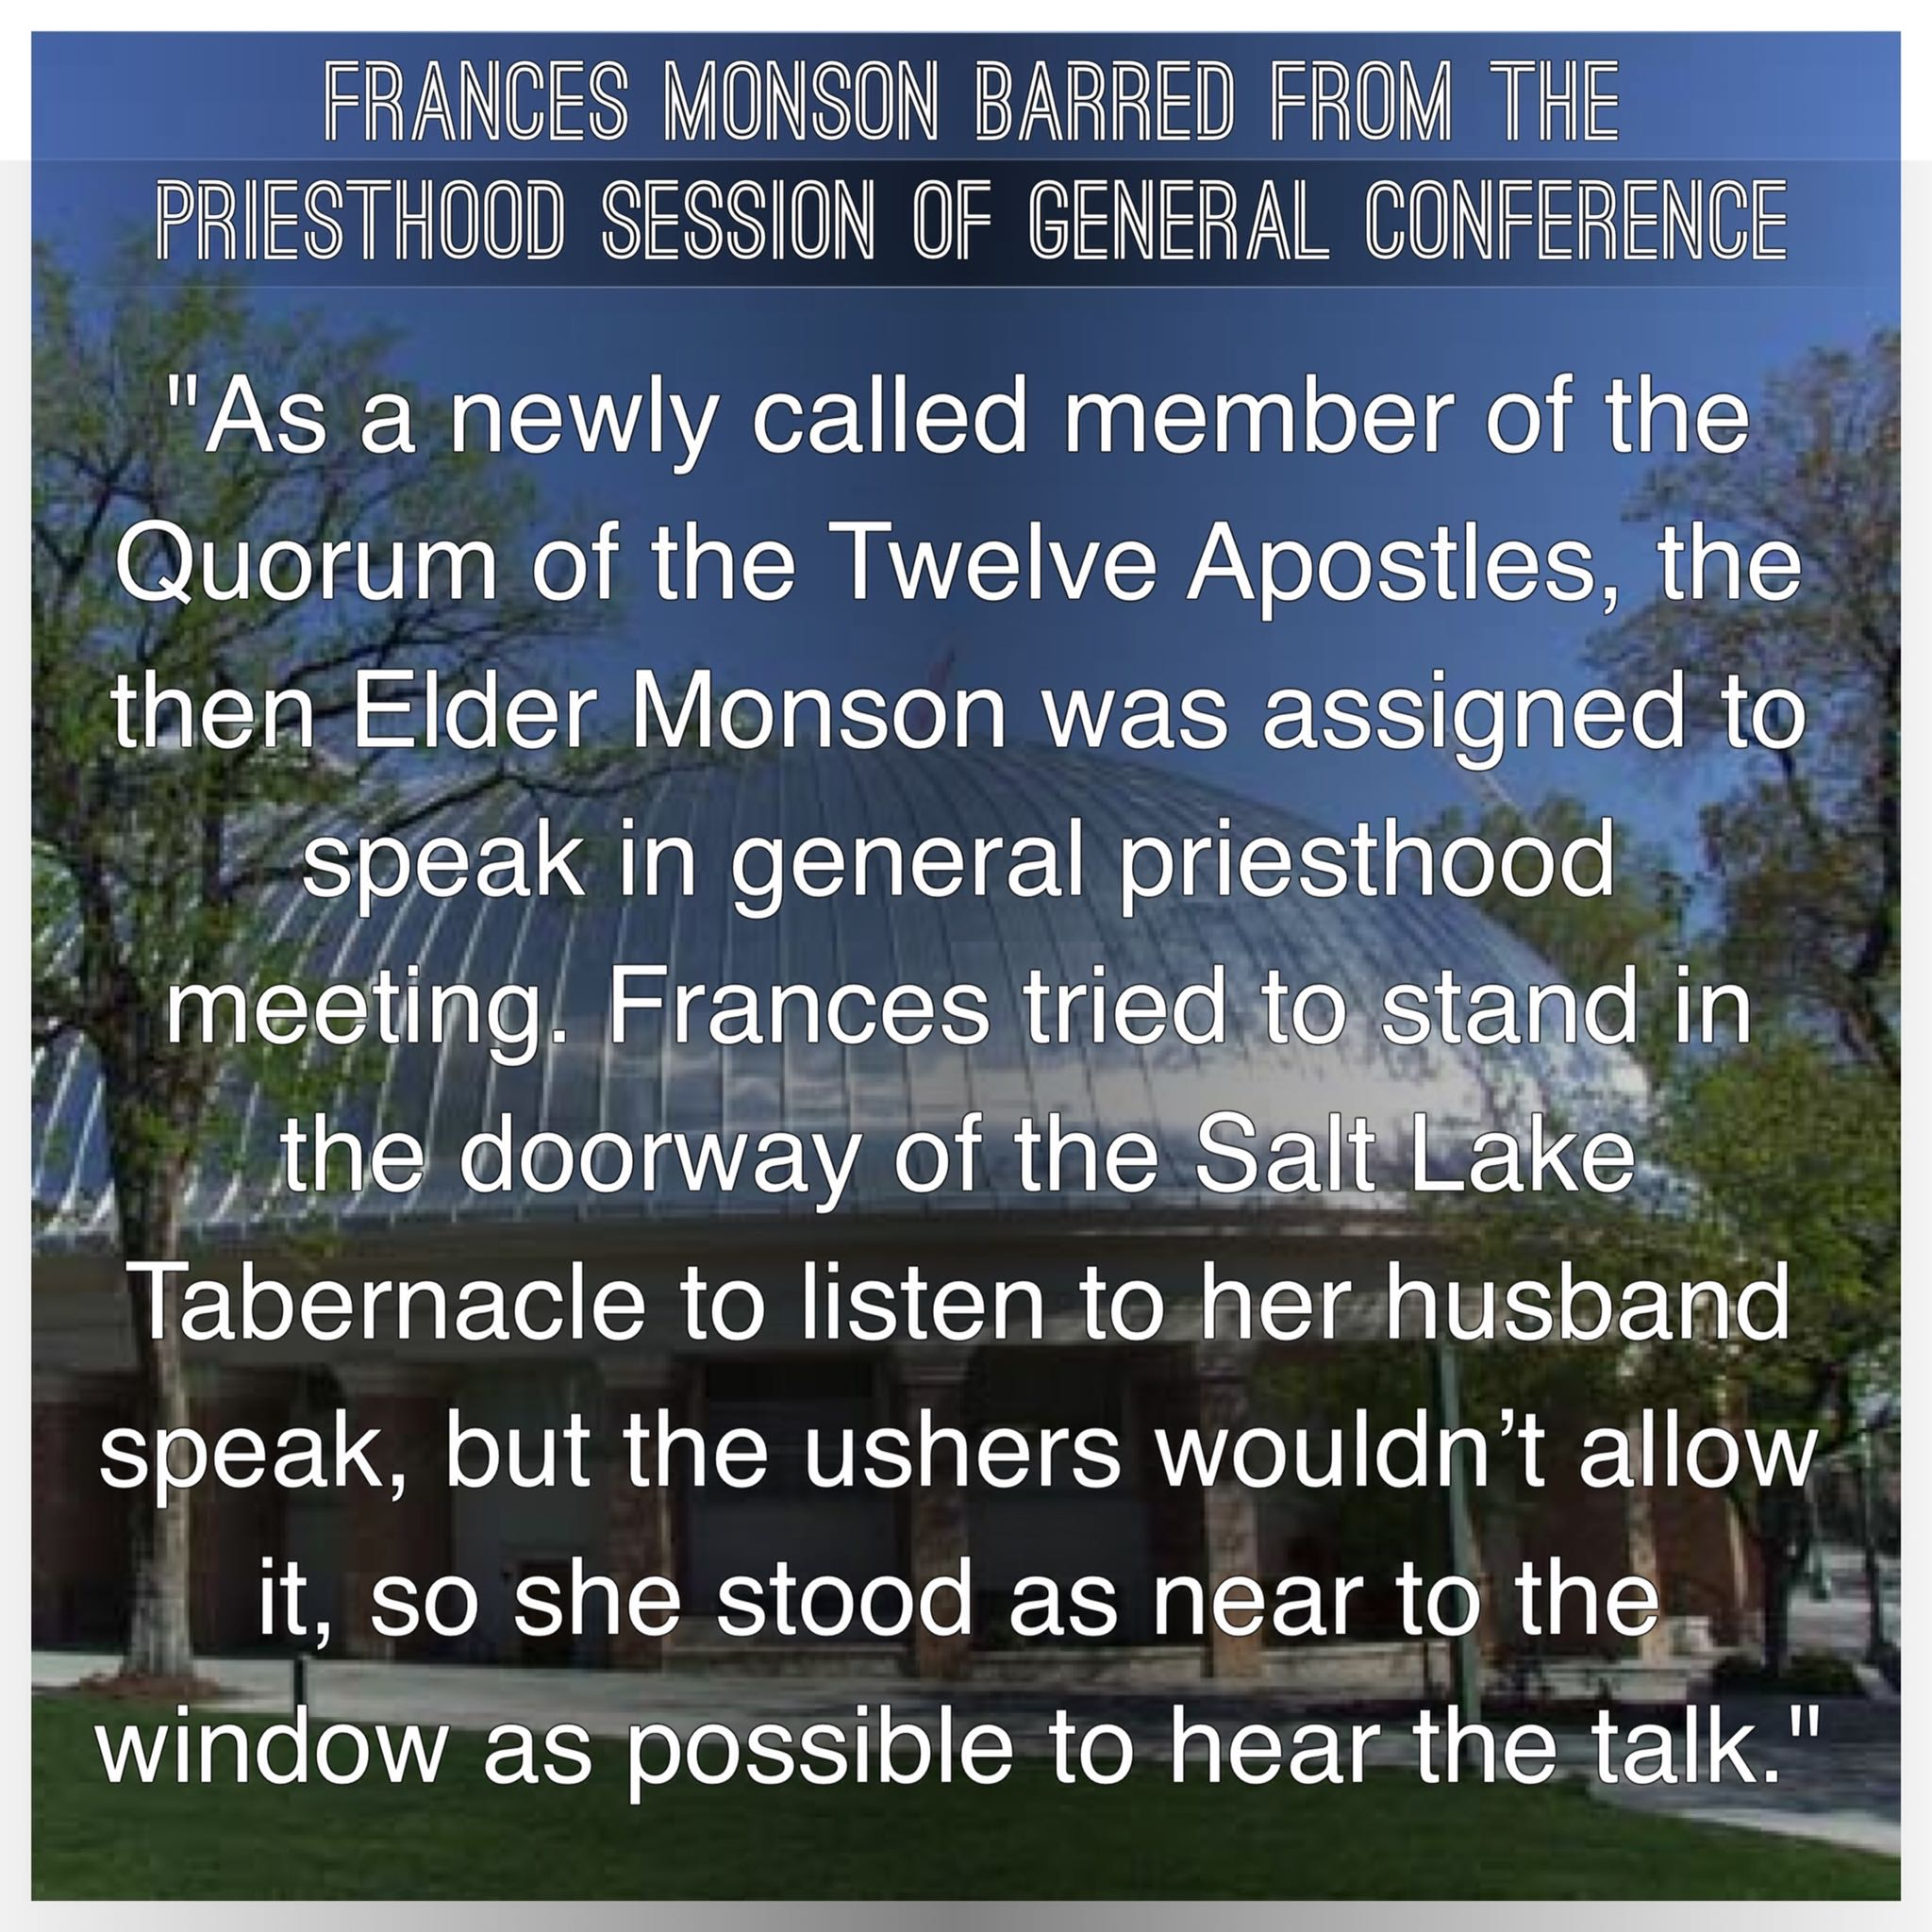 Frances Monson barred from conference